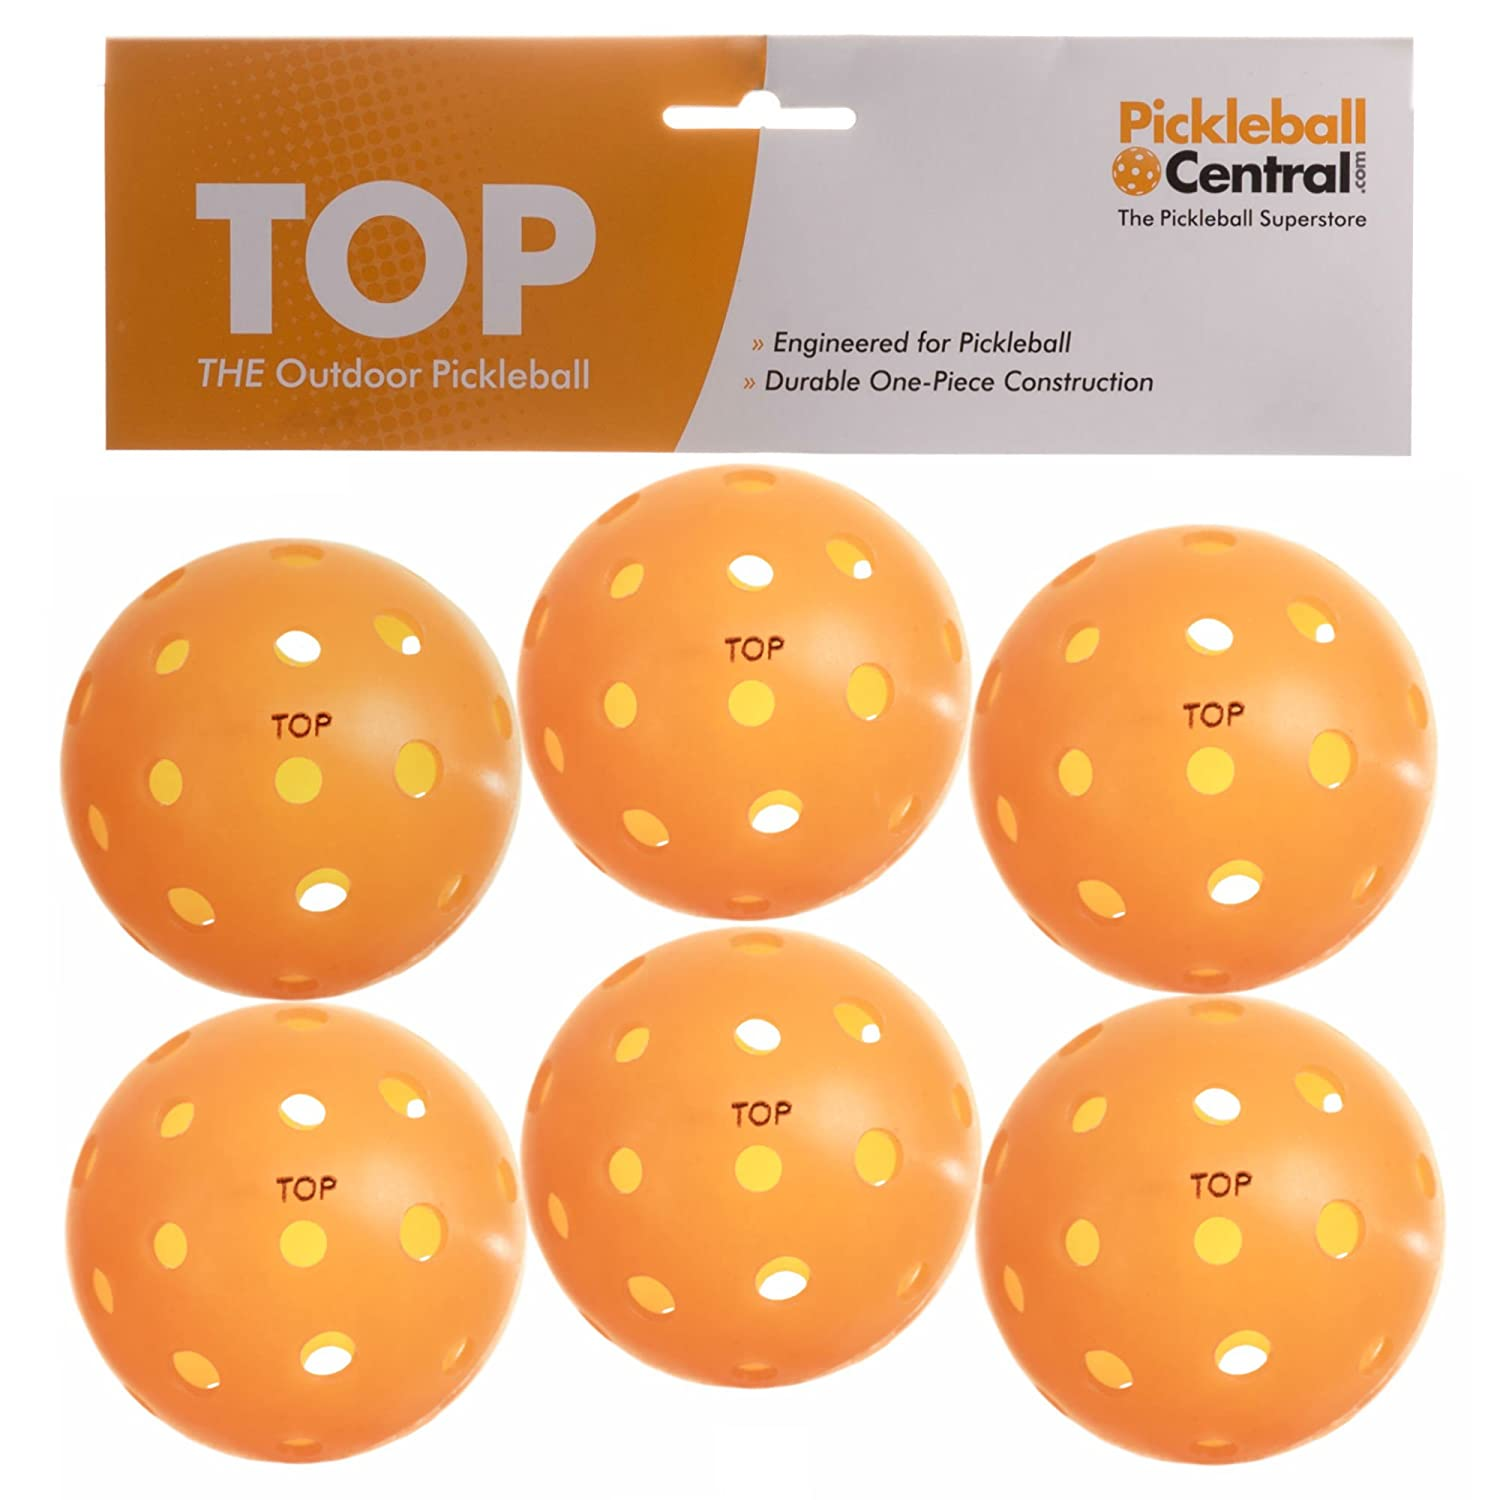 TOP ball (The Outdoor Pickleball) - 6 count - Orange - USAPA Approved for Tournament Play PickleballCentral